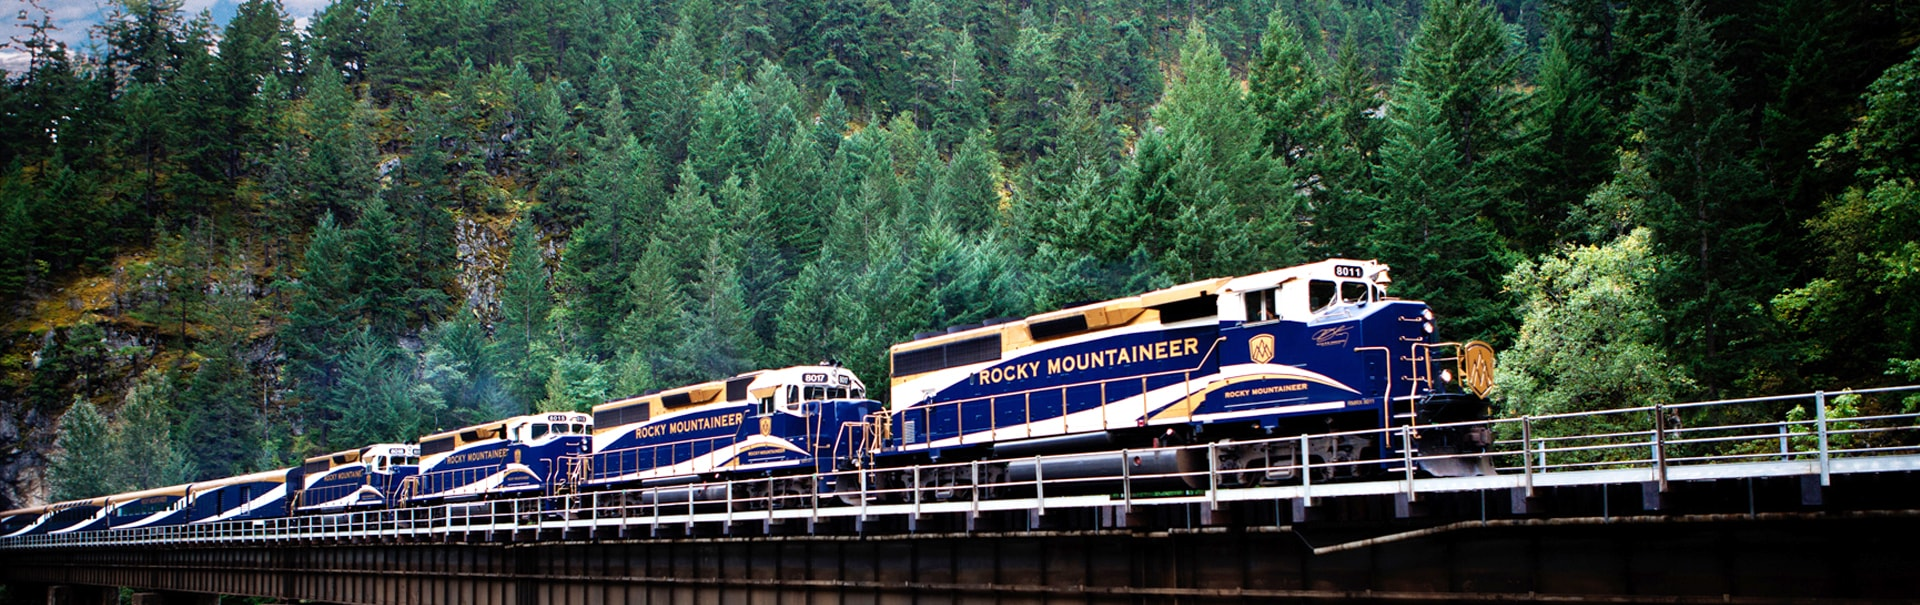 Rockies with Rocky Mountaineer Rail (SHCA3) Banner